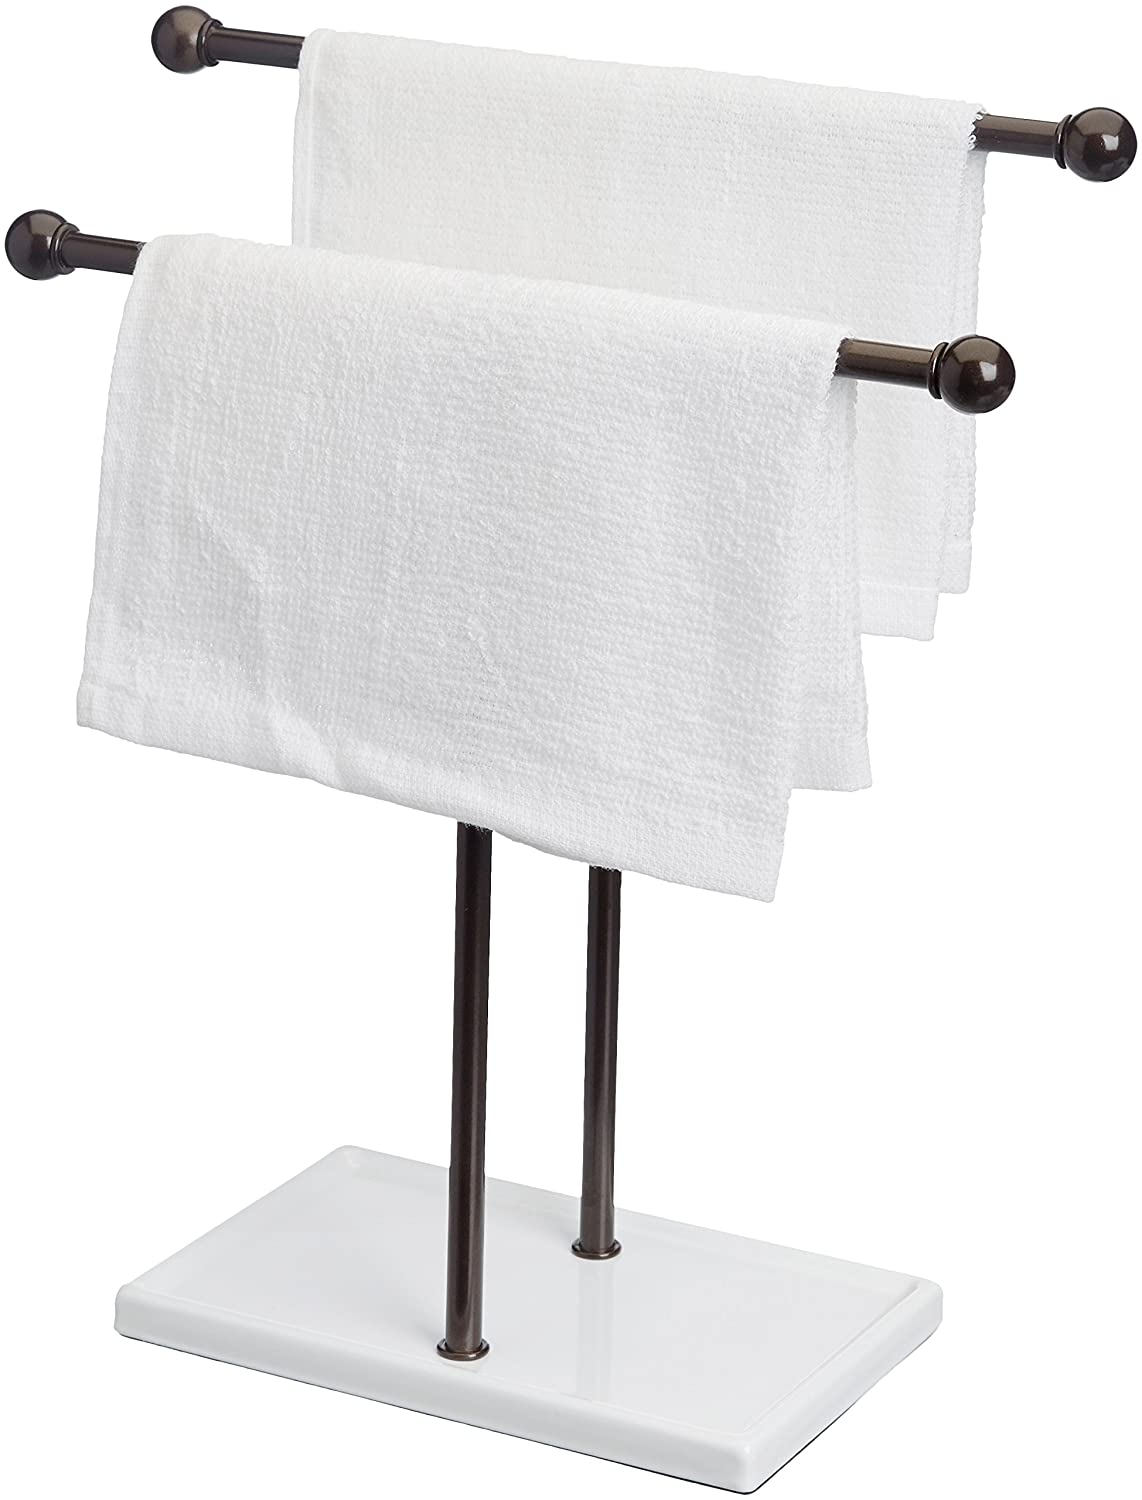 Amazon.com: AmazonBasics Double-T Hand Towel and Accessories Stand - Bronze/White: Home & Kitchen